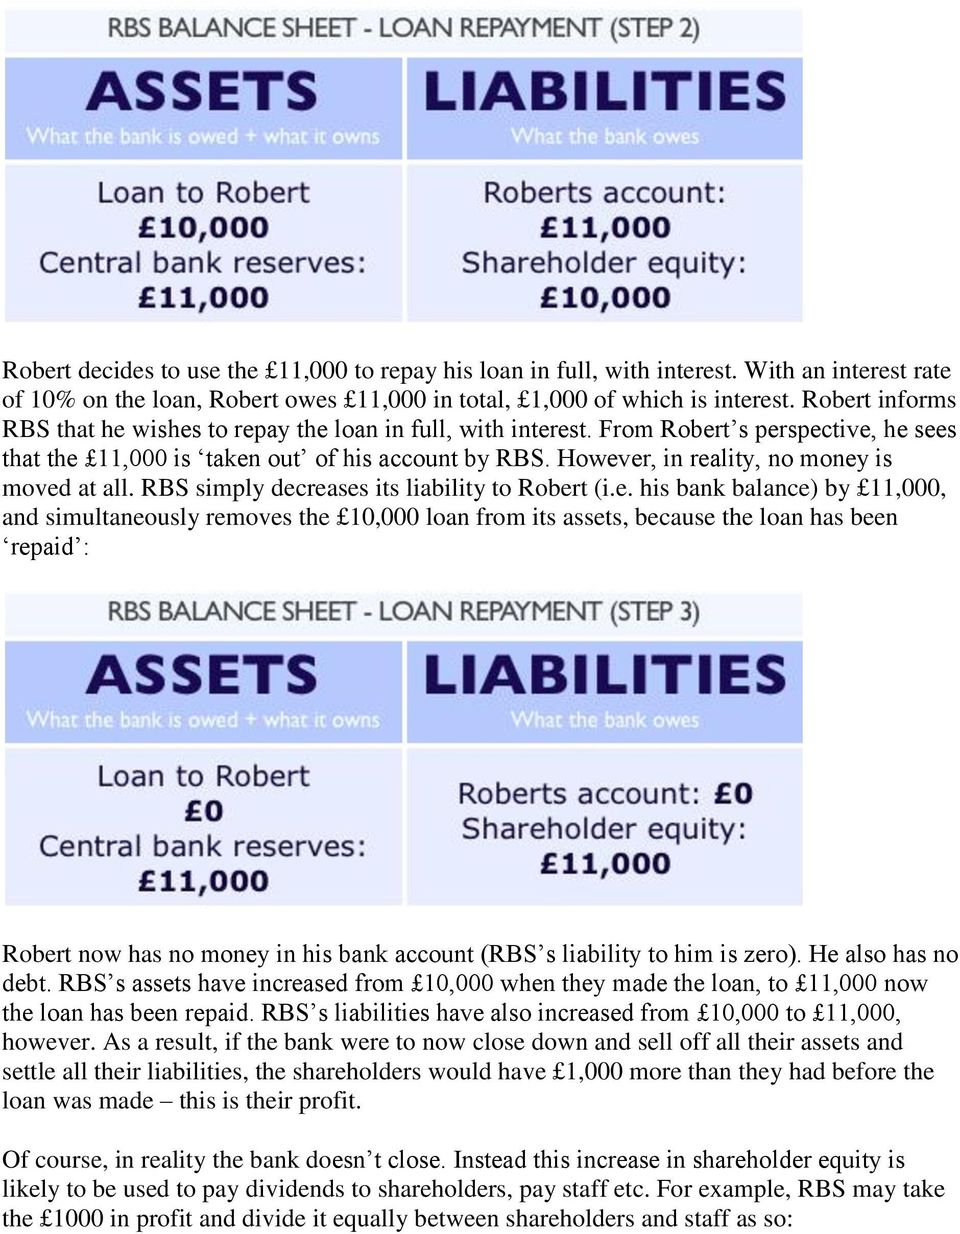 However, in reality, no money is moved at all. RBS simply decreases its liability to Robert (i.e. his bank balance) by 11,000, and simultaneously removes the 10,000 loan from its assets, because the